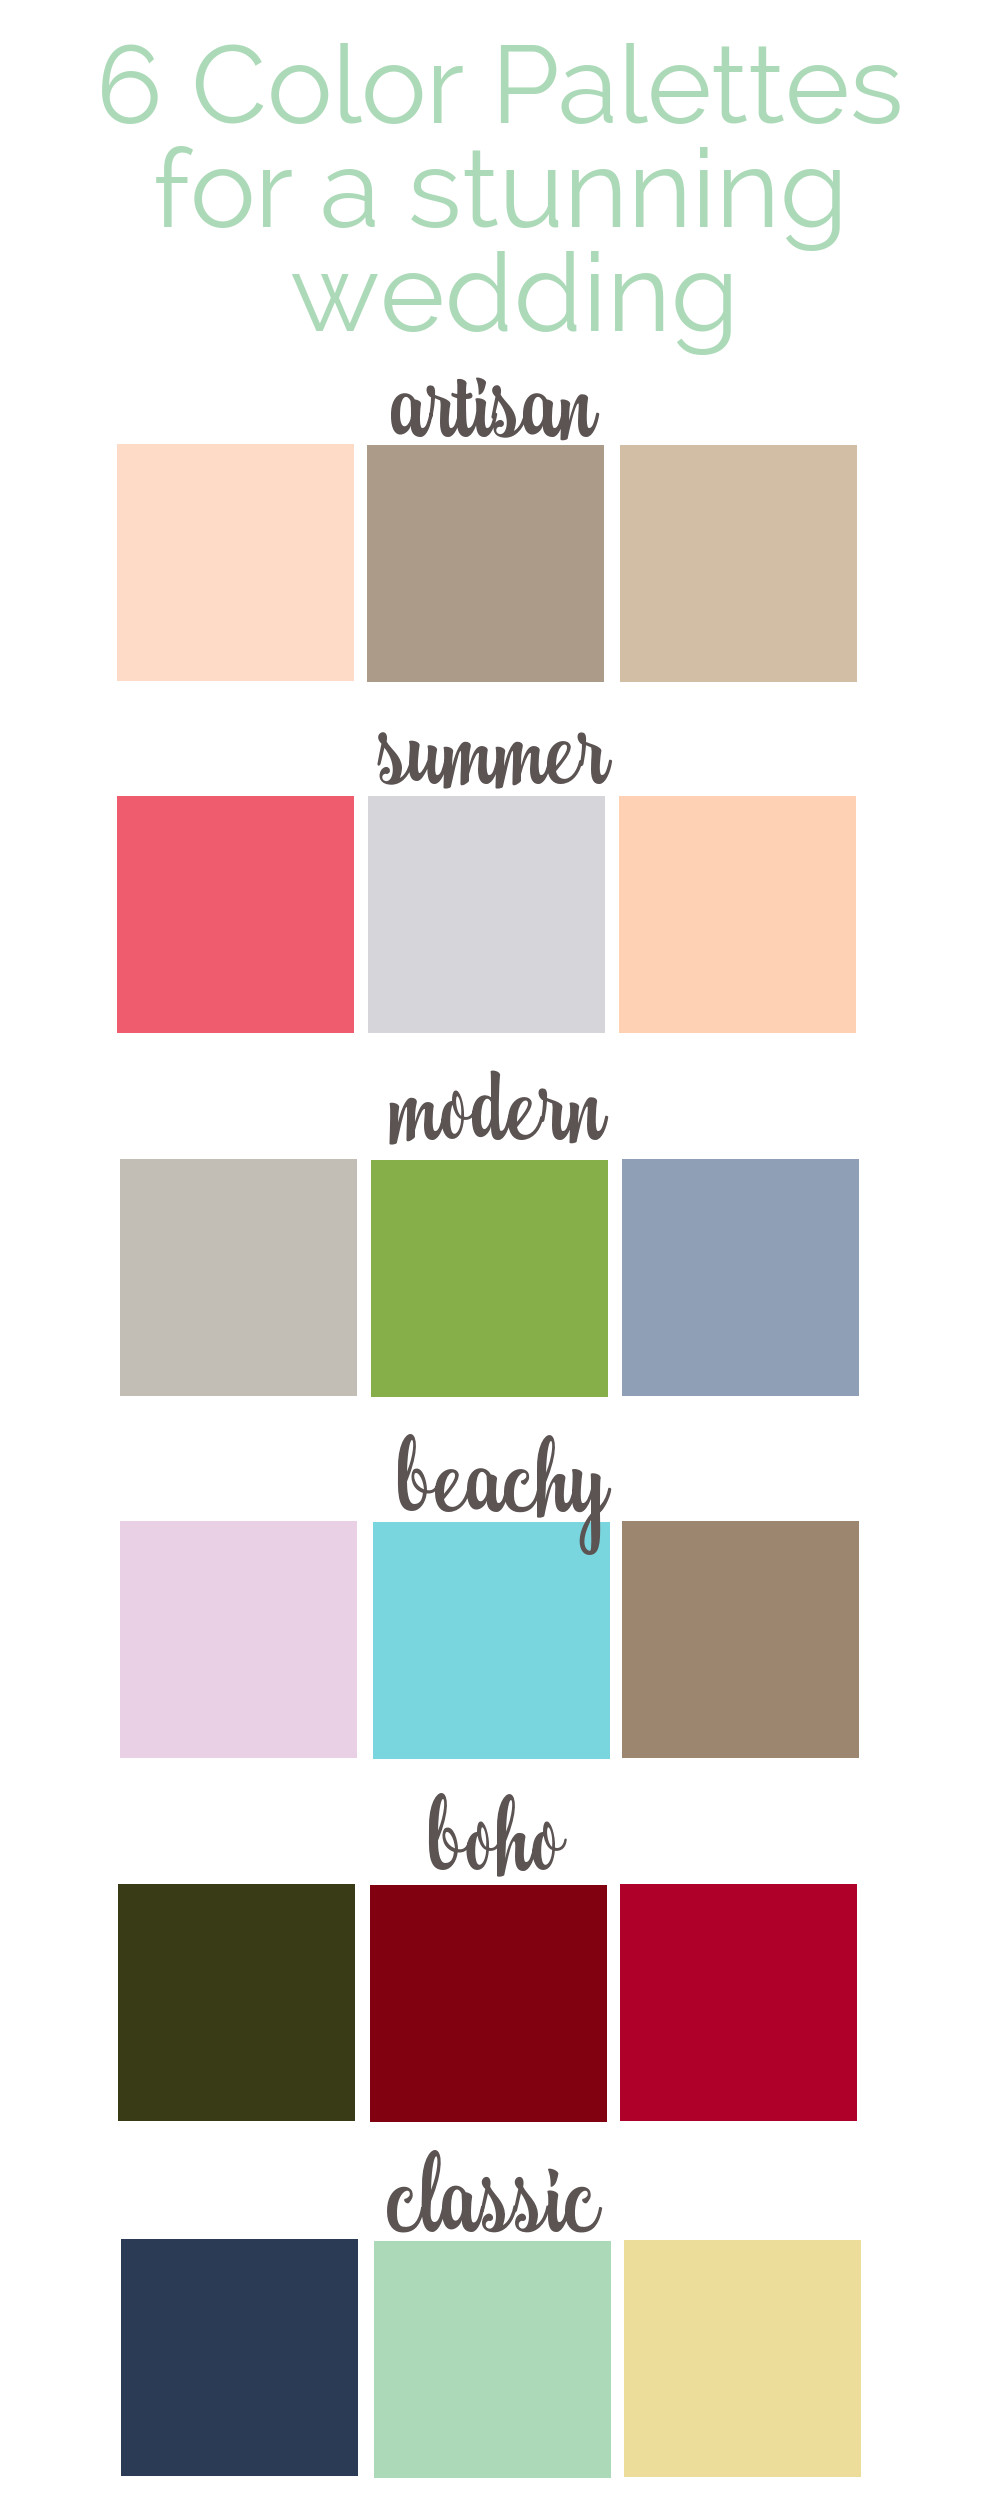 Six color palettes for a personalized, stunning wedding.   Artisan muted color scheme. Summer bright and fun.  Modern green and blue combination. Beachy aqua and purple style.  Bohemian style with rich colors of reds.  Classic timeless blues.